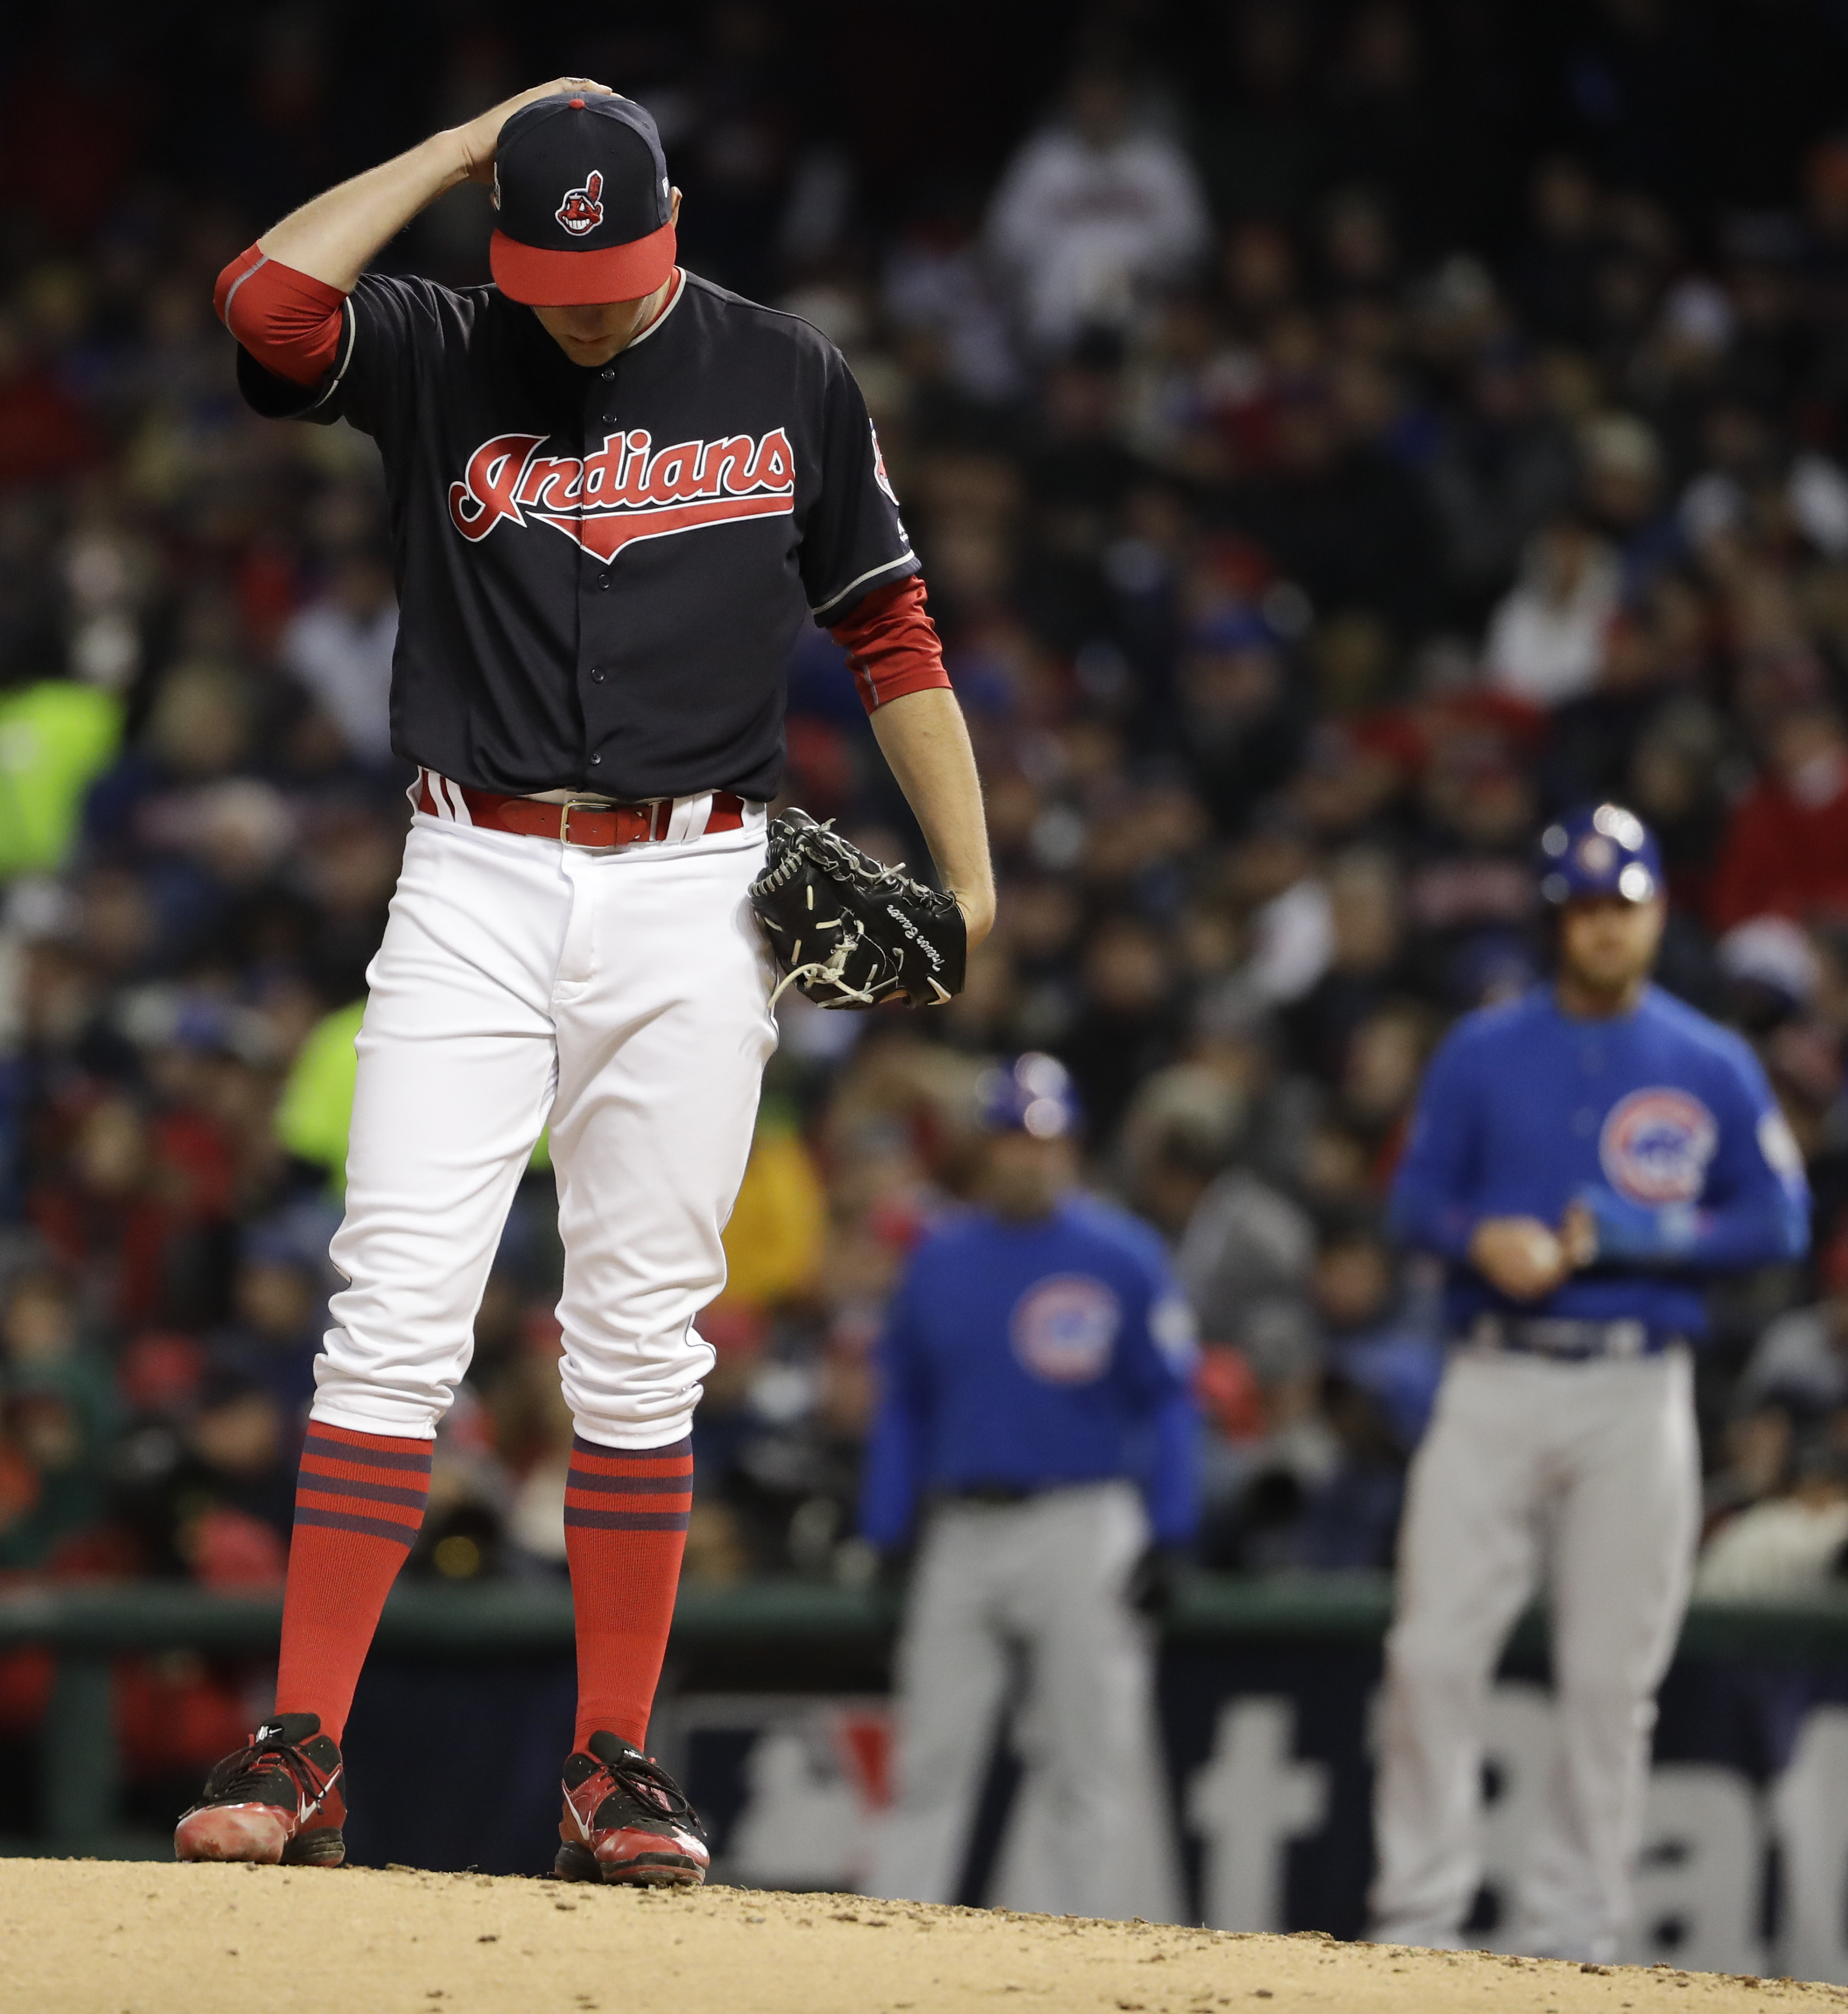 Cleveland Indians starting pitcher Trevor Bauer hangs his head after giving up a hit to the Chicago Cubs during the third inning of Game 2 of the Major League Baseball World Series Wednesday, Oct. 26, 2016, in Cleveland. (AP Photo/Matt Slocum)